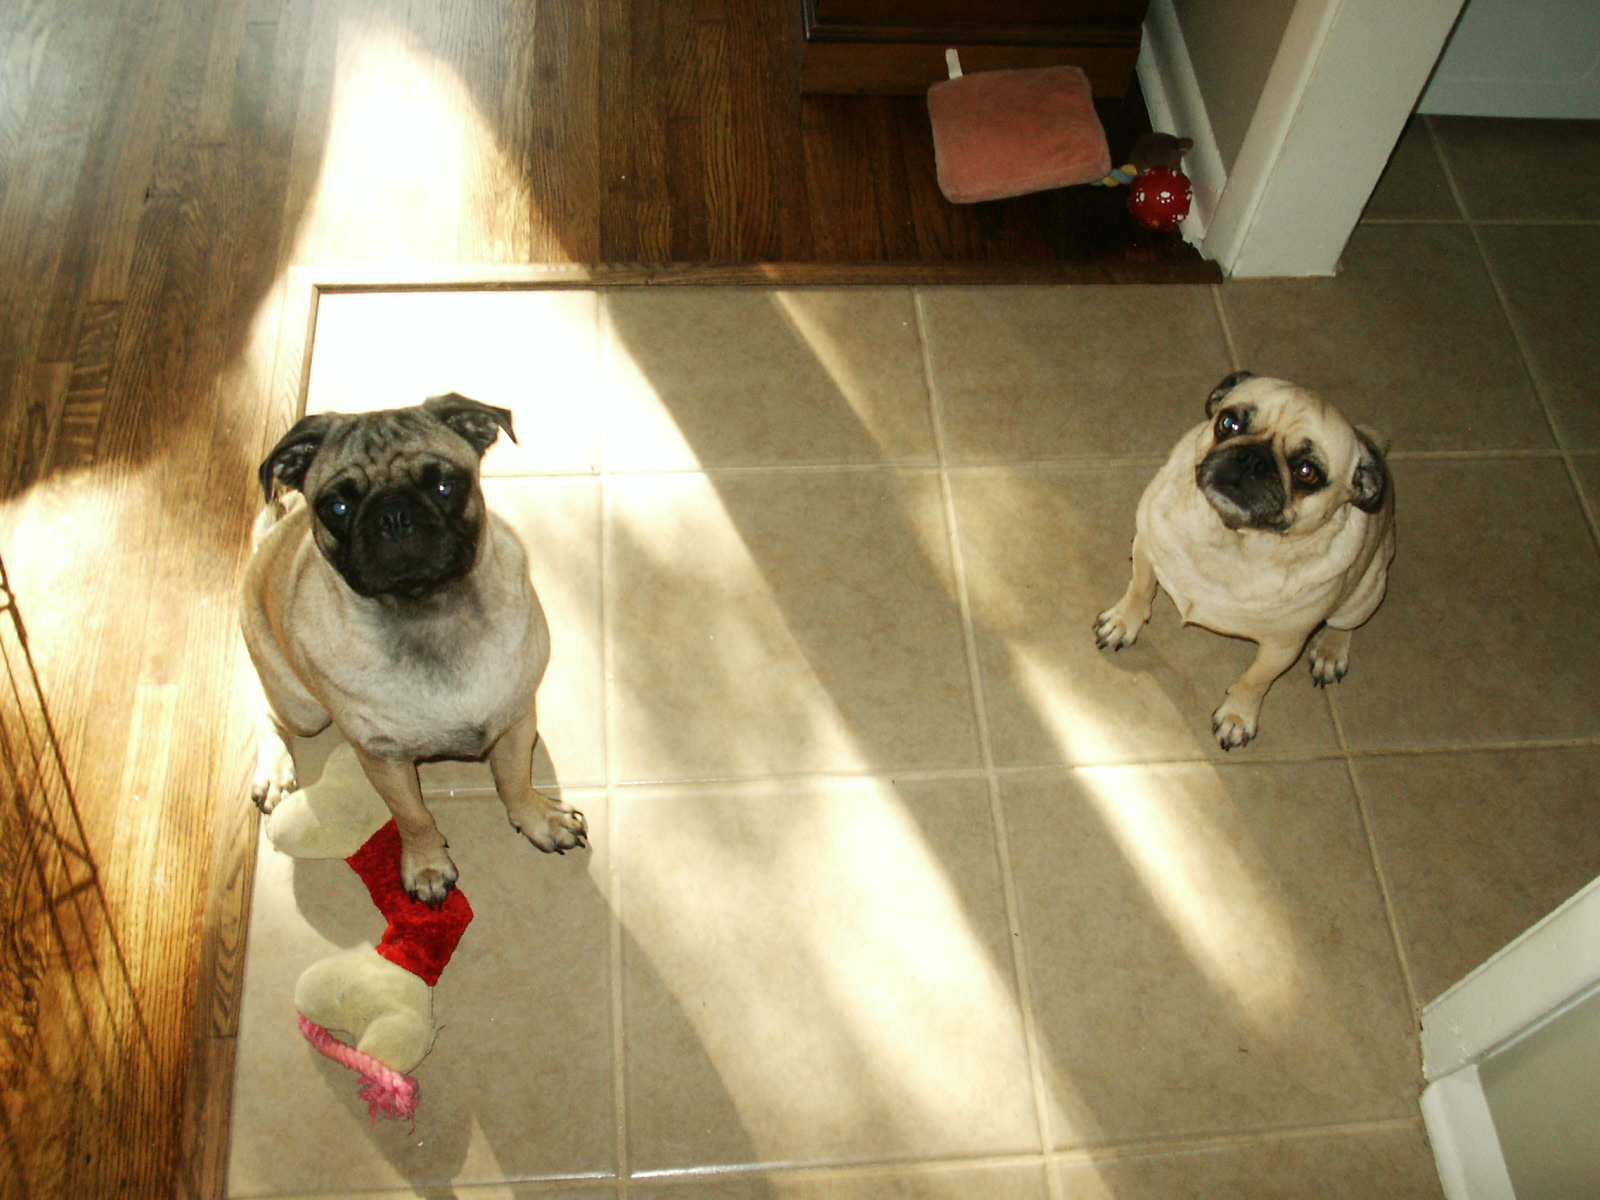 Dog, Pug, Furbabies